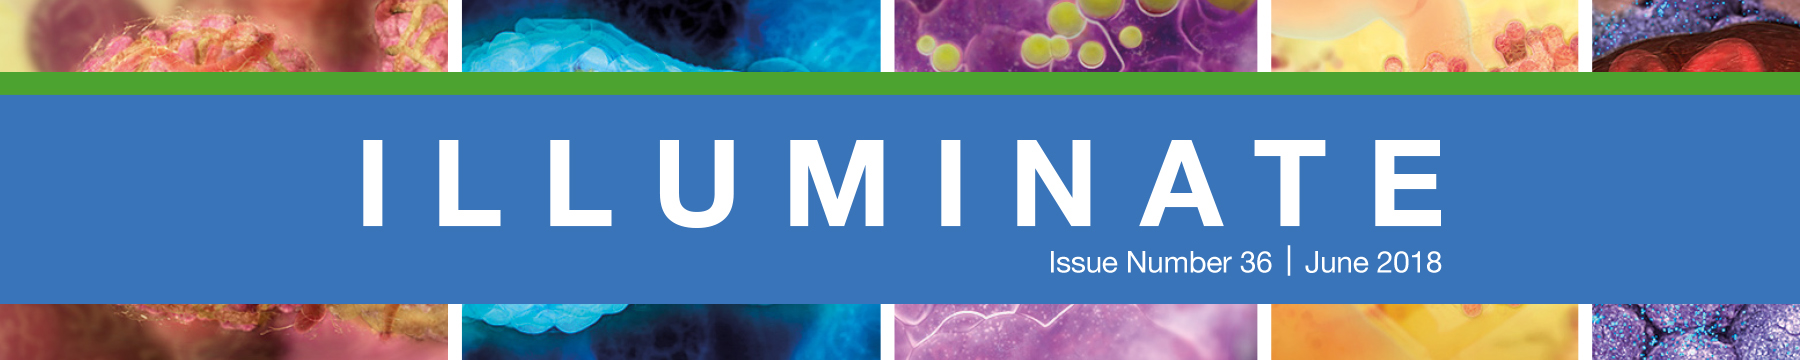 Illuminate newsletter index page, June 2018